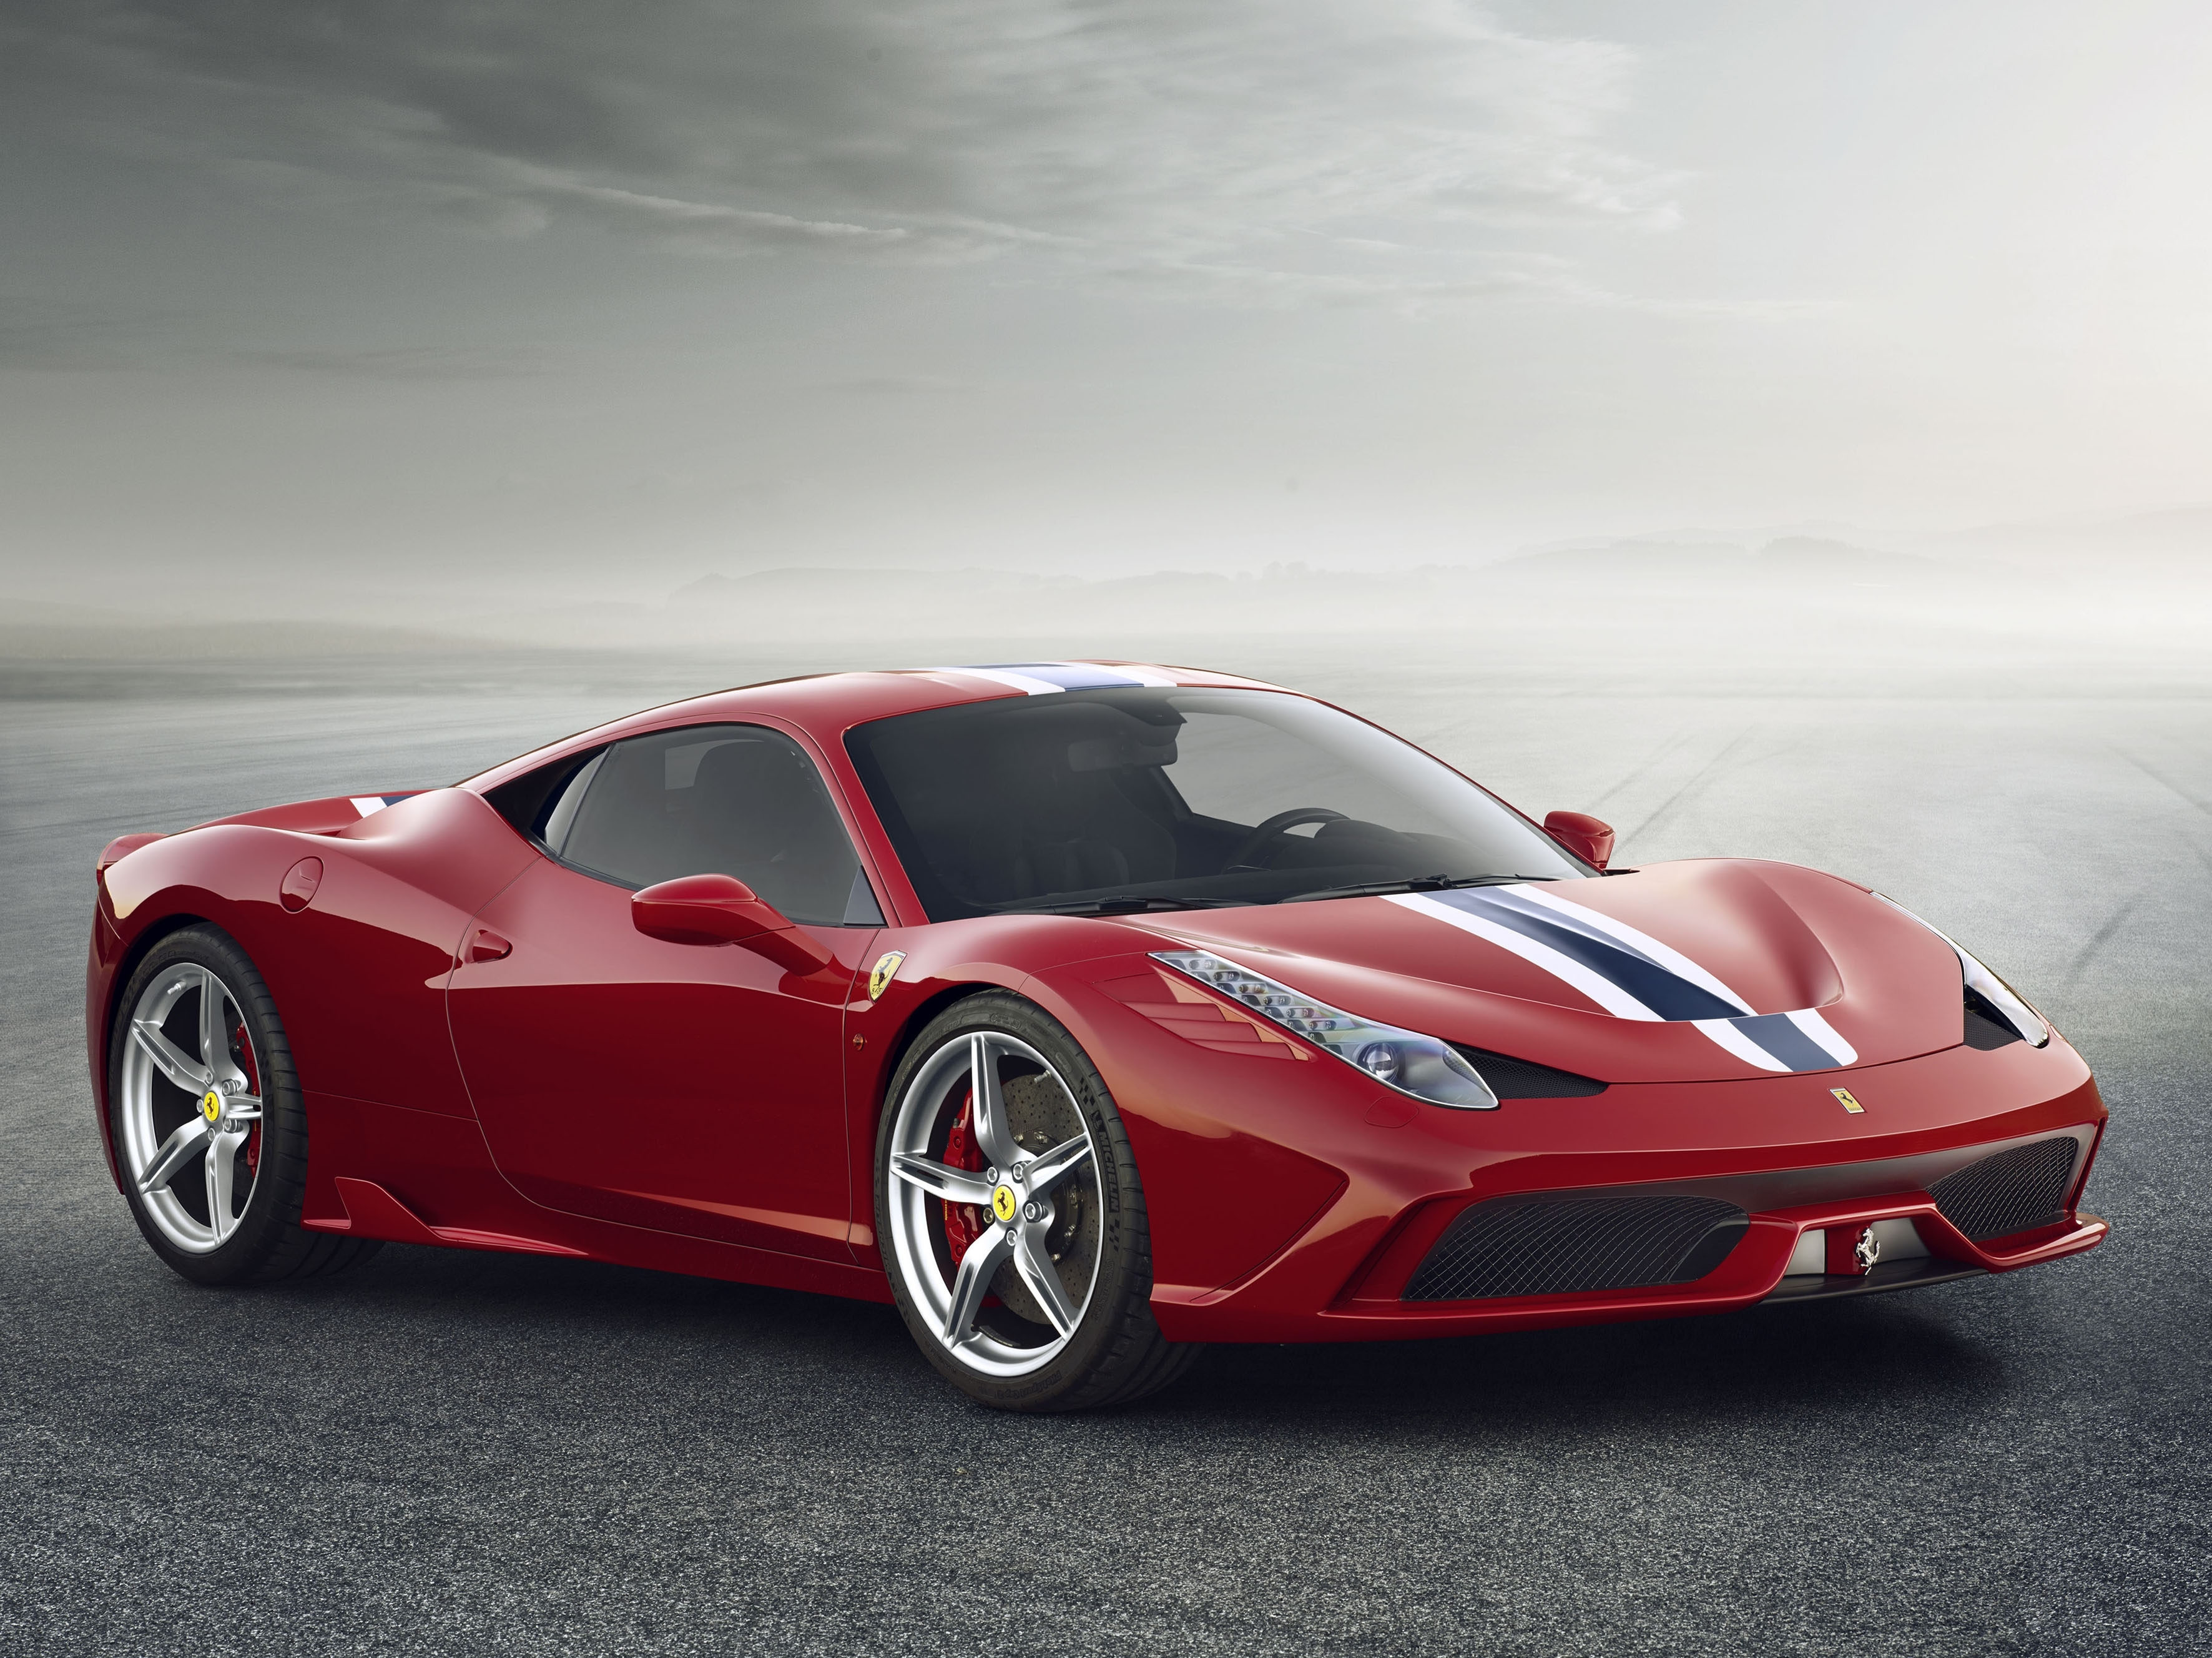 Ferrari 458 Speciale is, well, something special